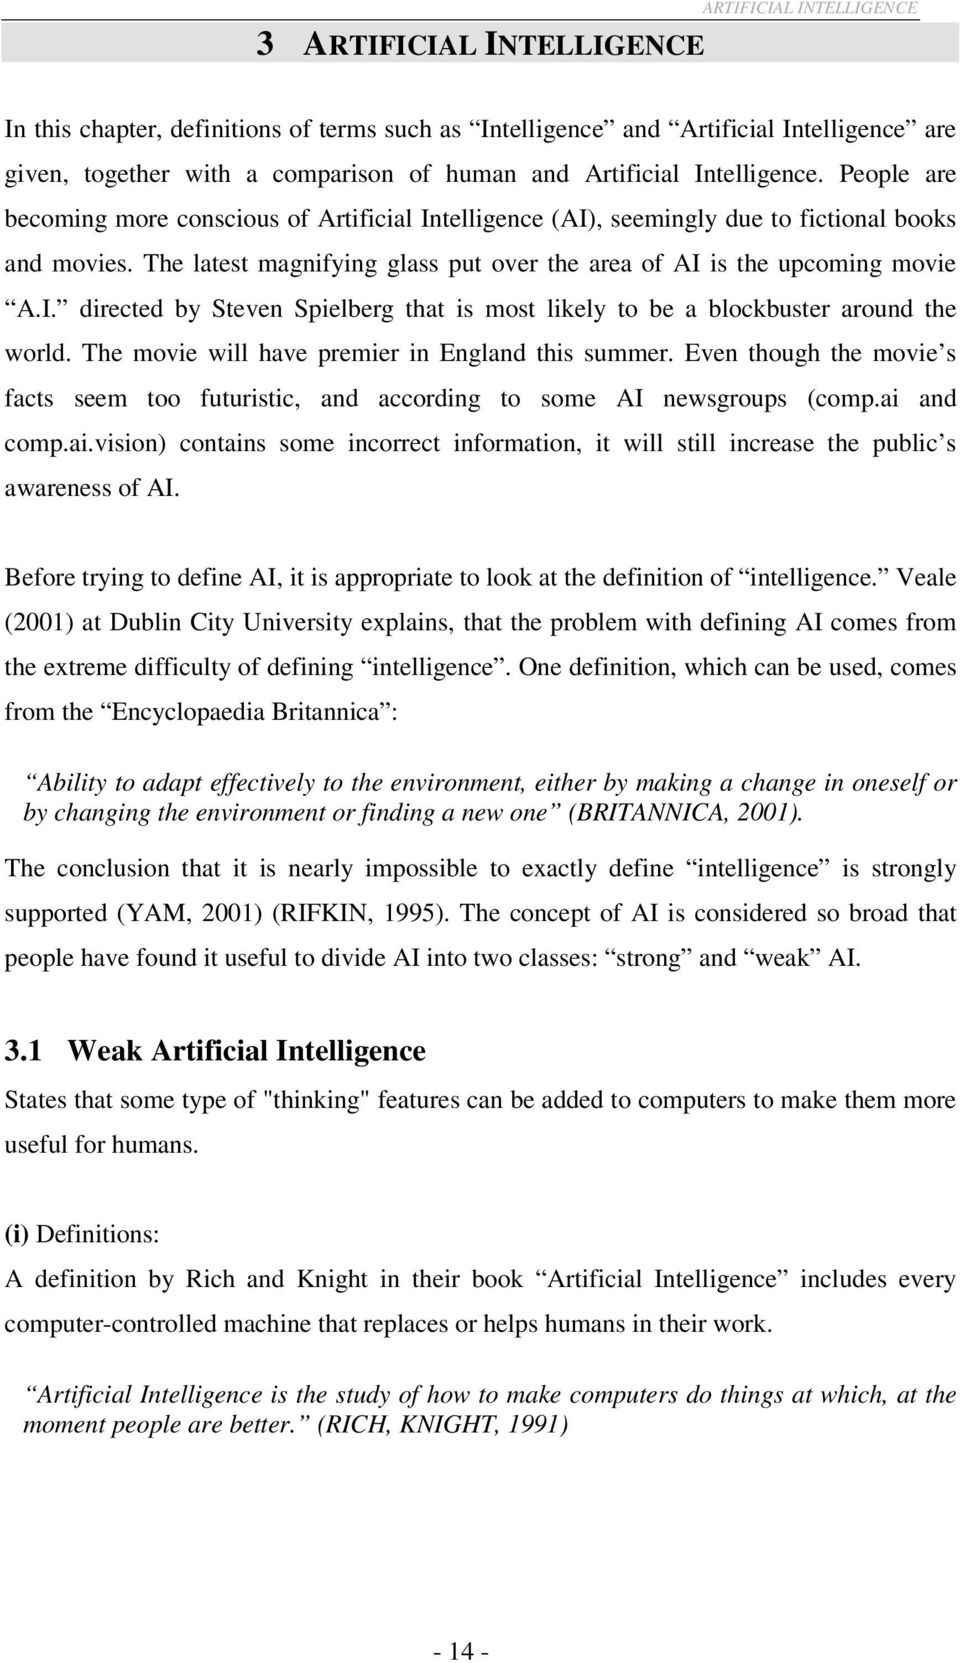 Artificial Intelligence Book Rich Knight